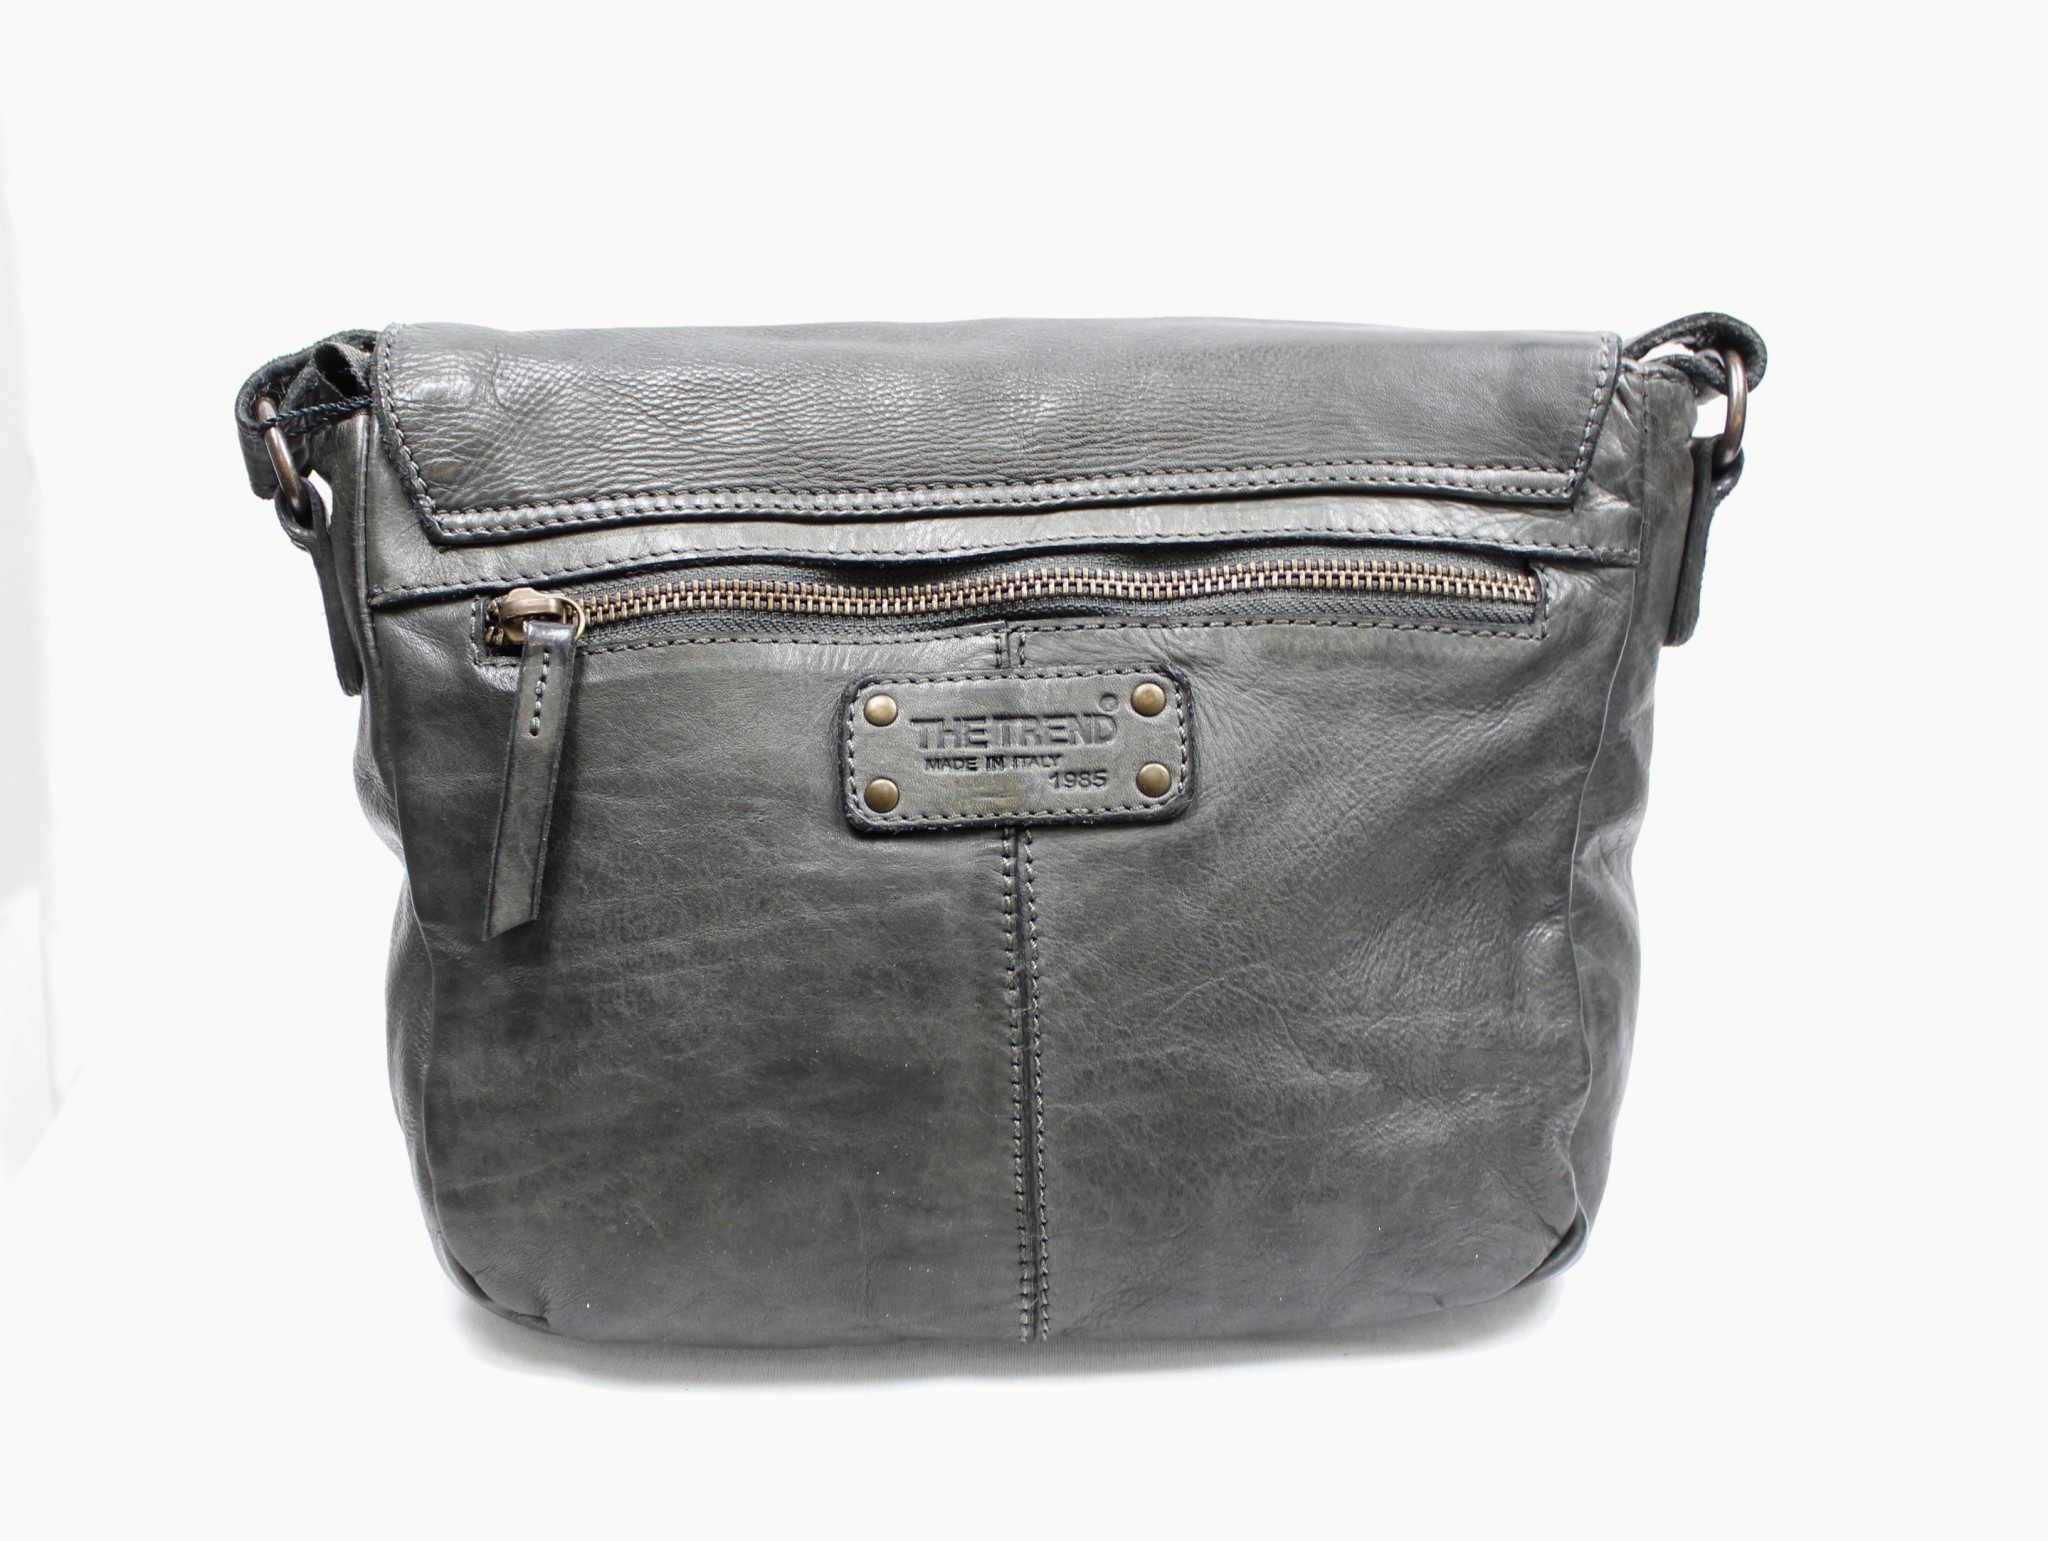 THE TREND THE TREND 4203362 Cross Body